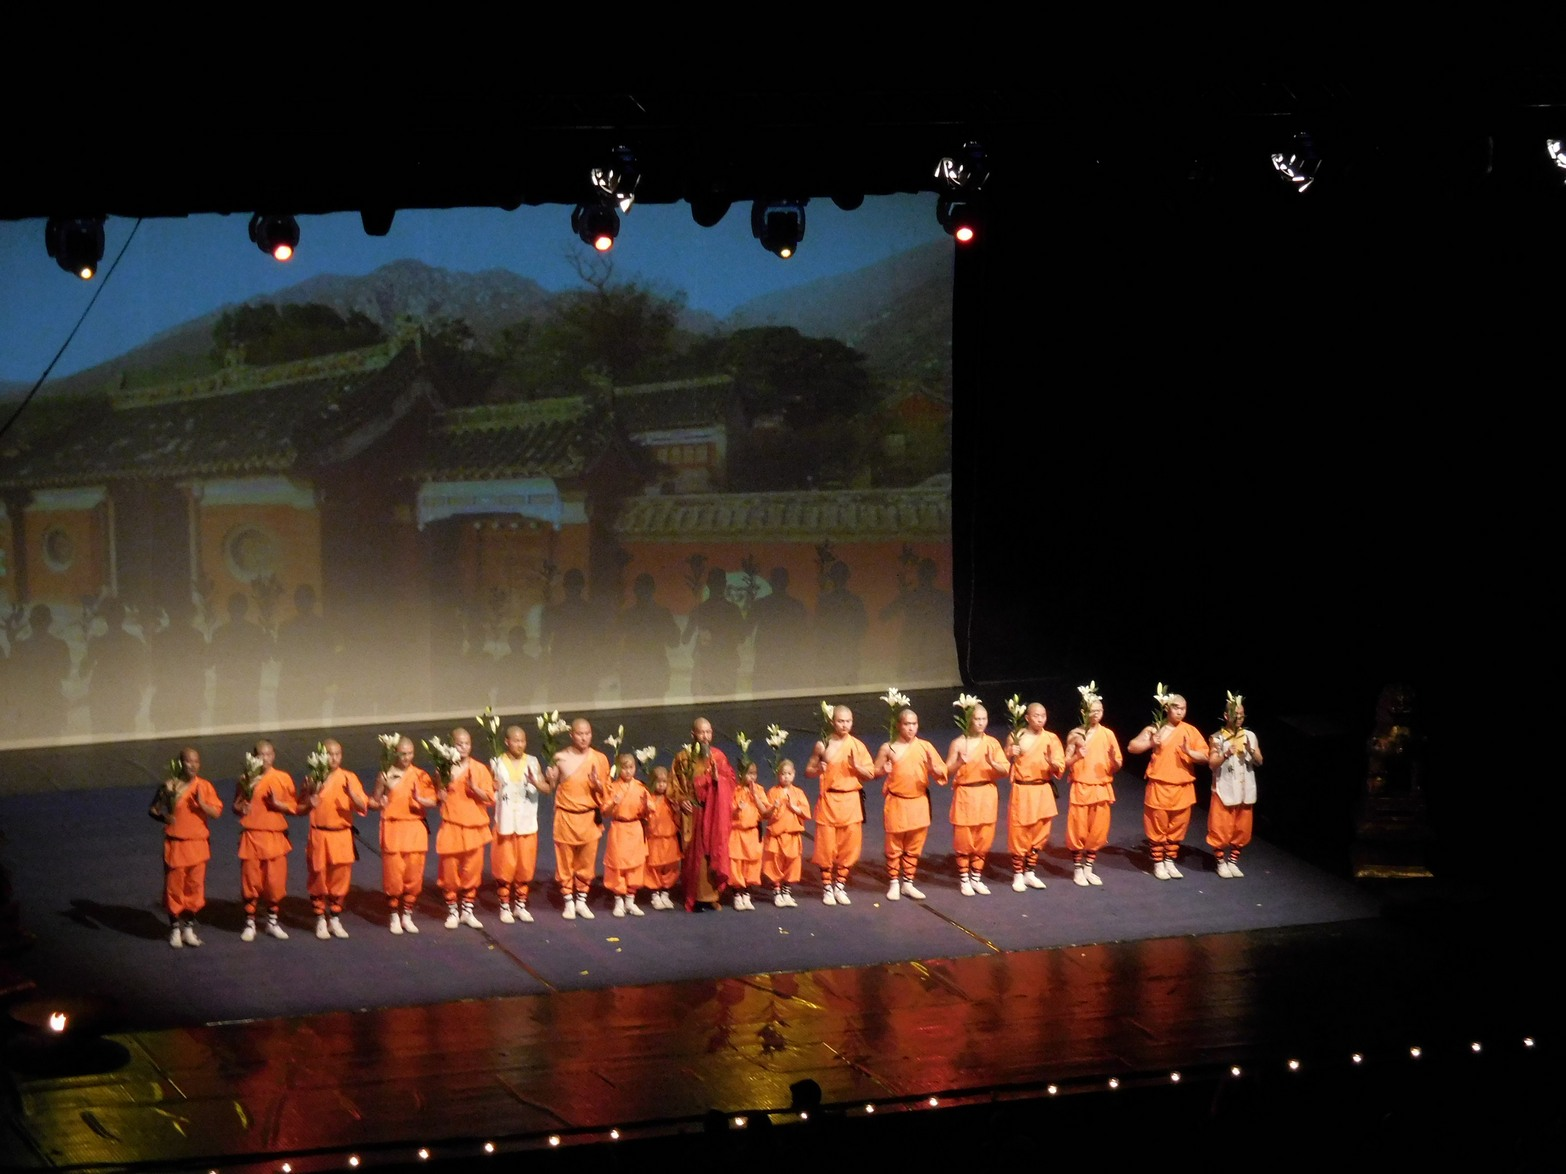 Shaolin monks, the Whole Group Saying its Goodbyes, Sofia, Bulgaria